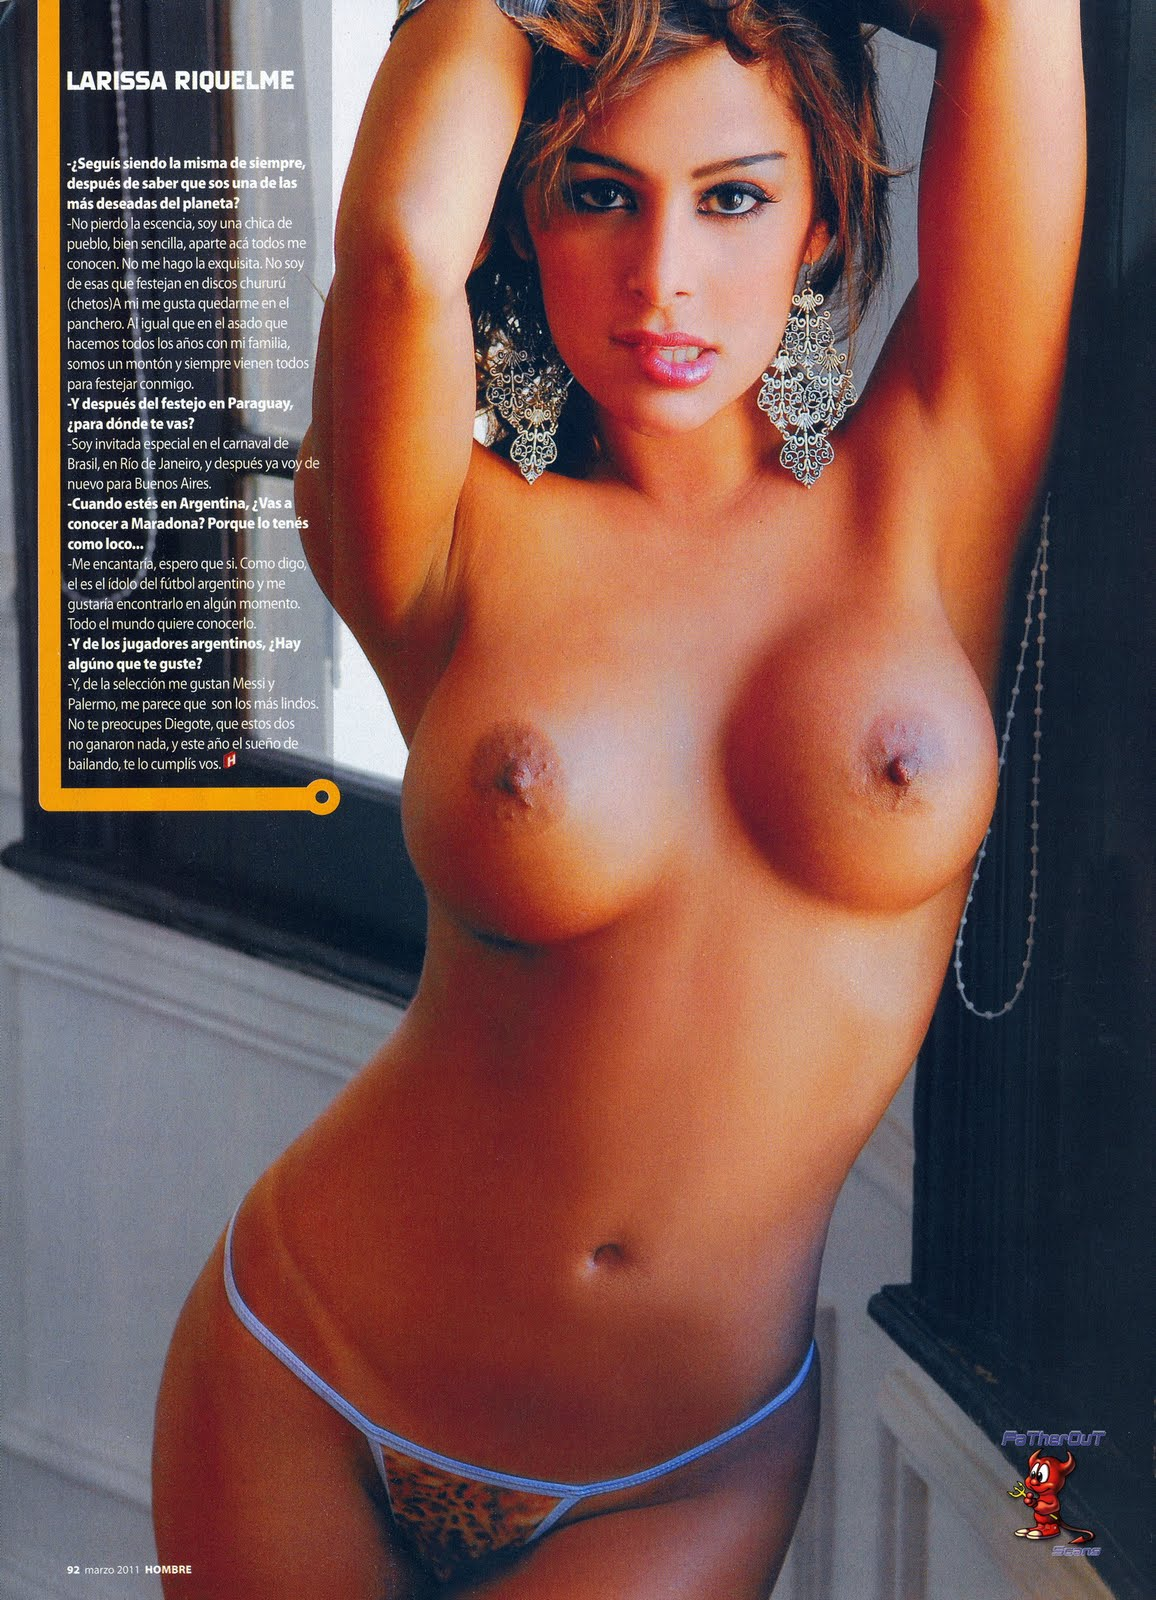 Larissa Riquelme Topless Again For H Extremo Best Free Pussy And